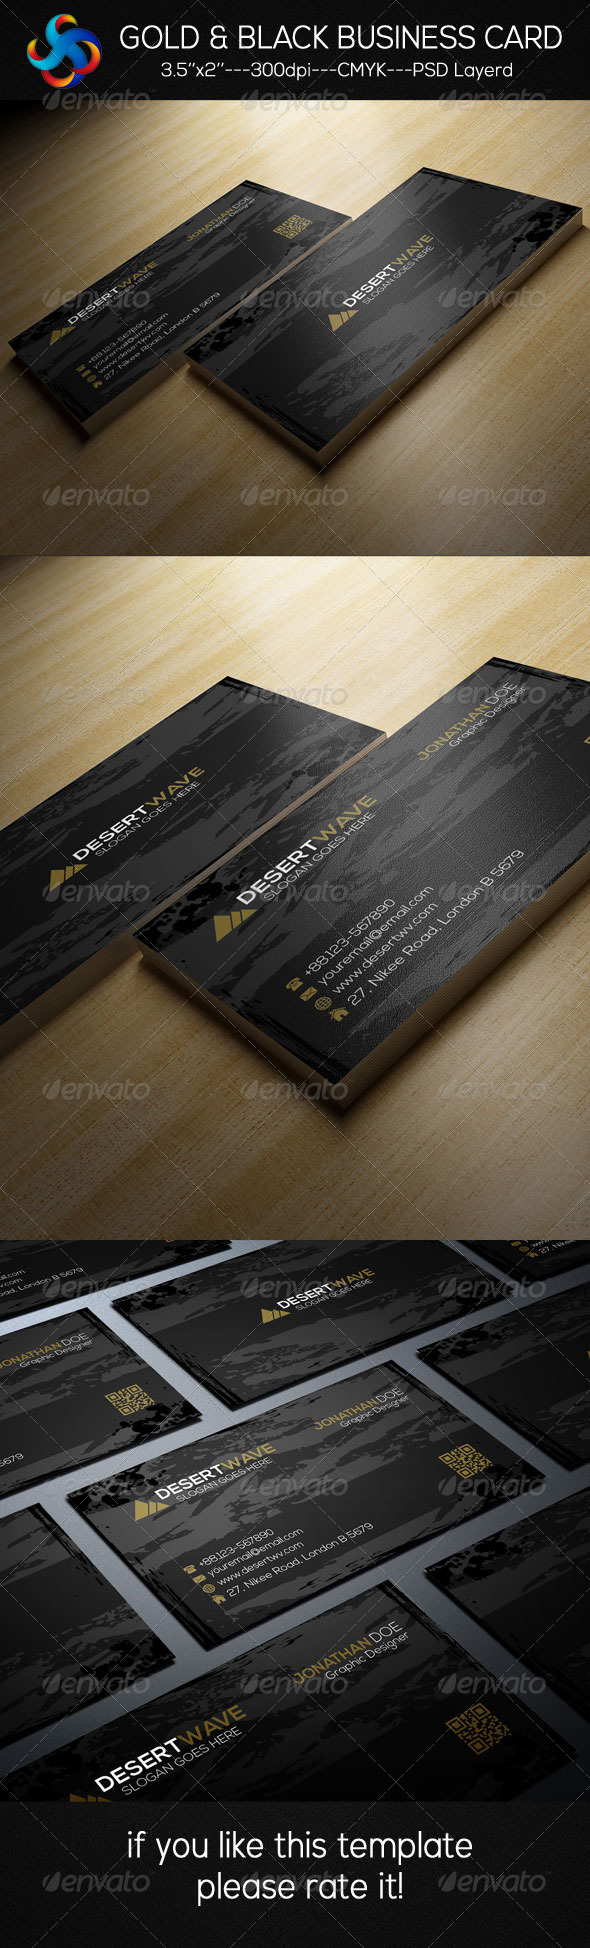 GraphicRiver Gold & Black Business Card 8576049